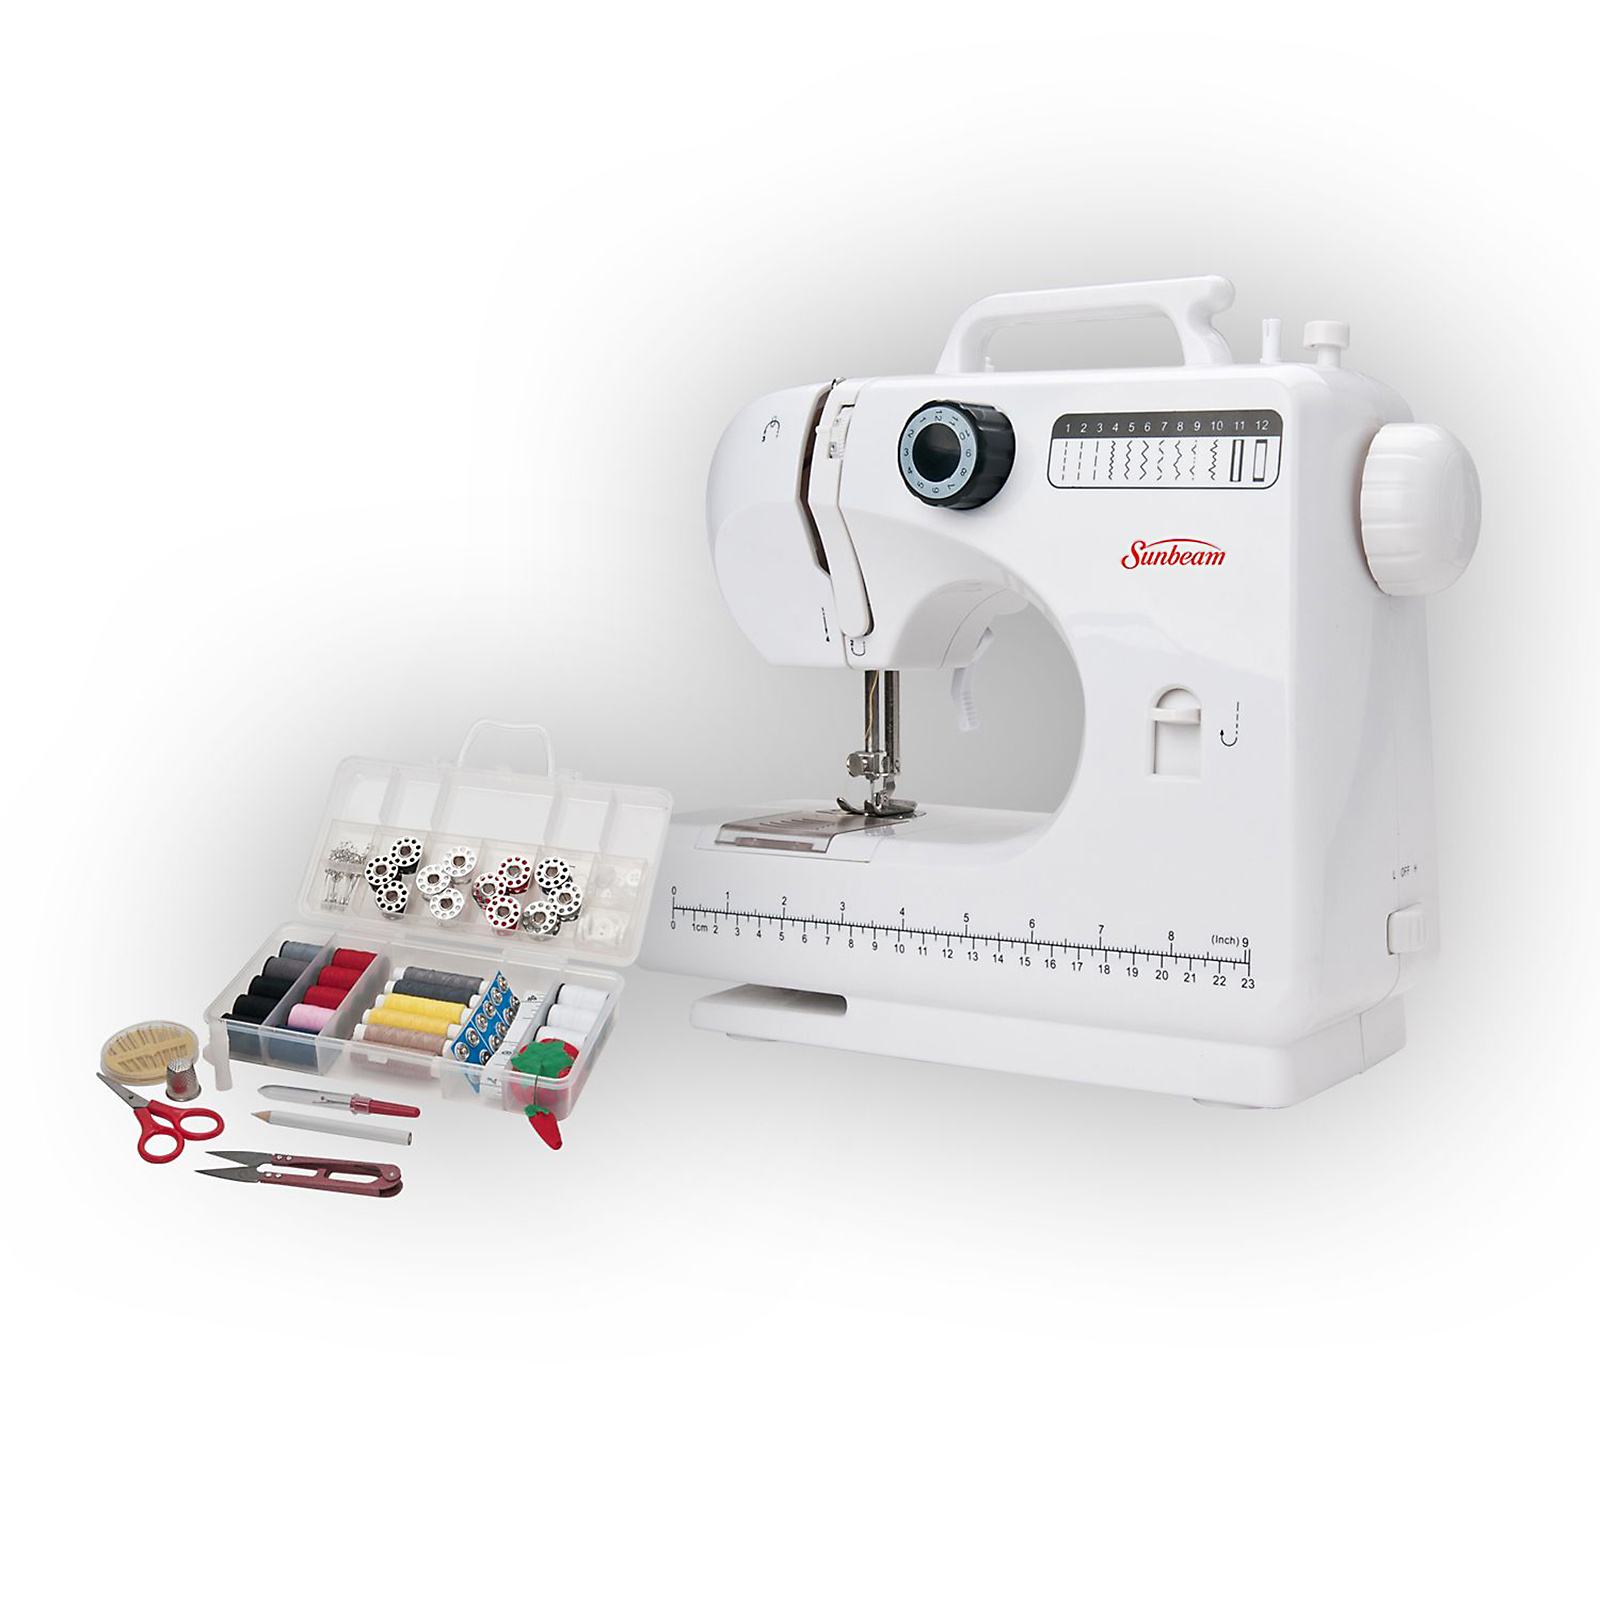 Compact Sewing Machine with Bonus Kit